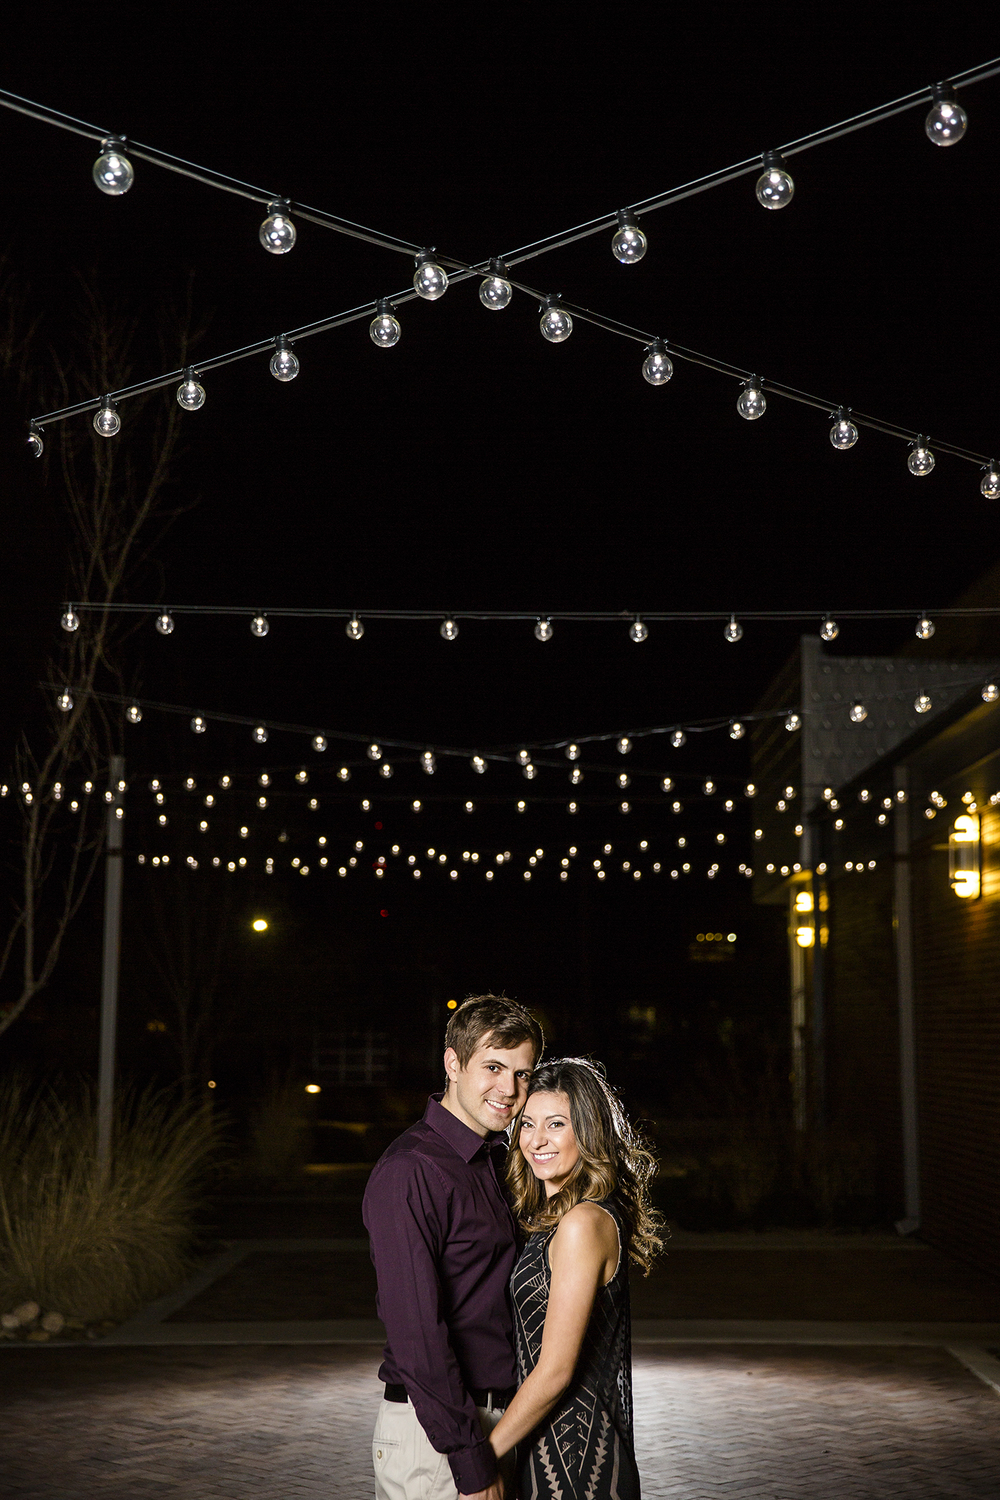 LHUCA building, bokeh, romantic engagement photos, cute couple